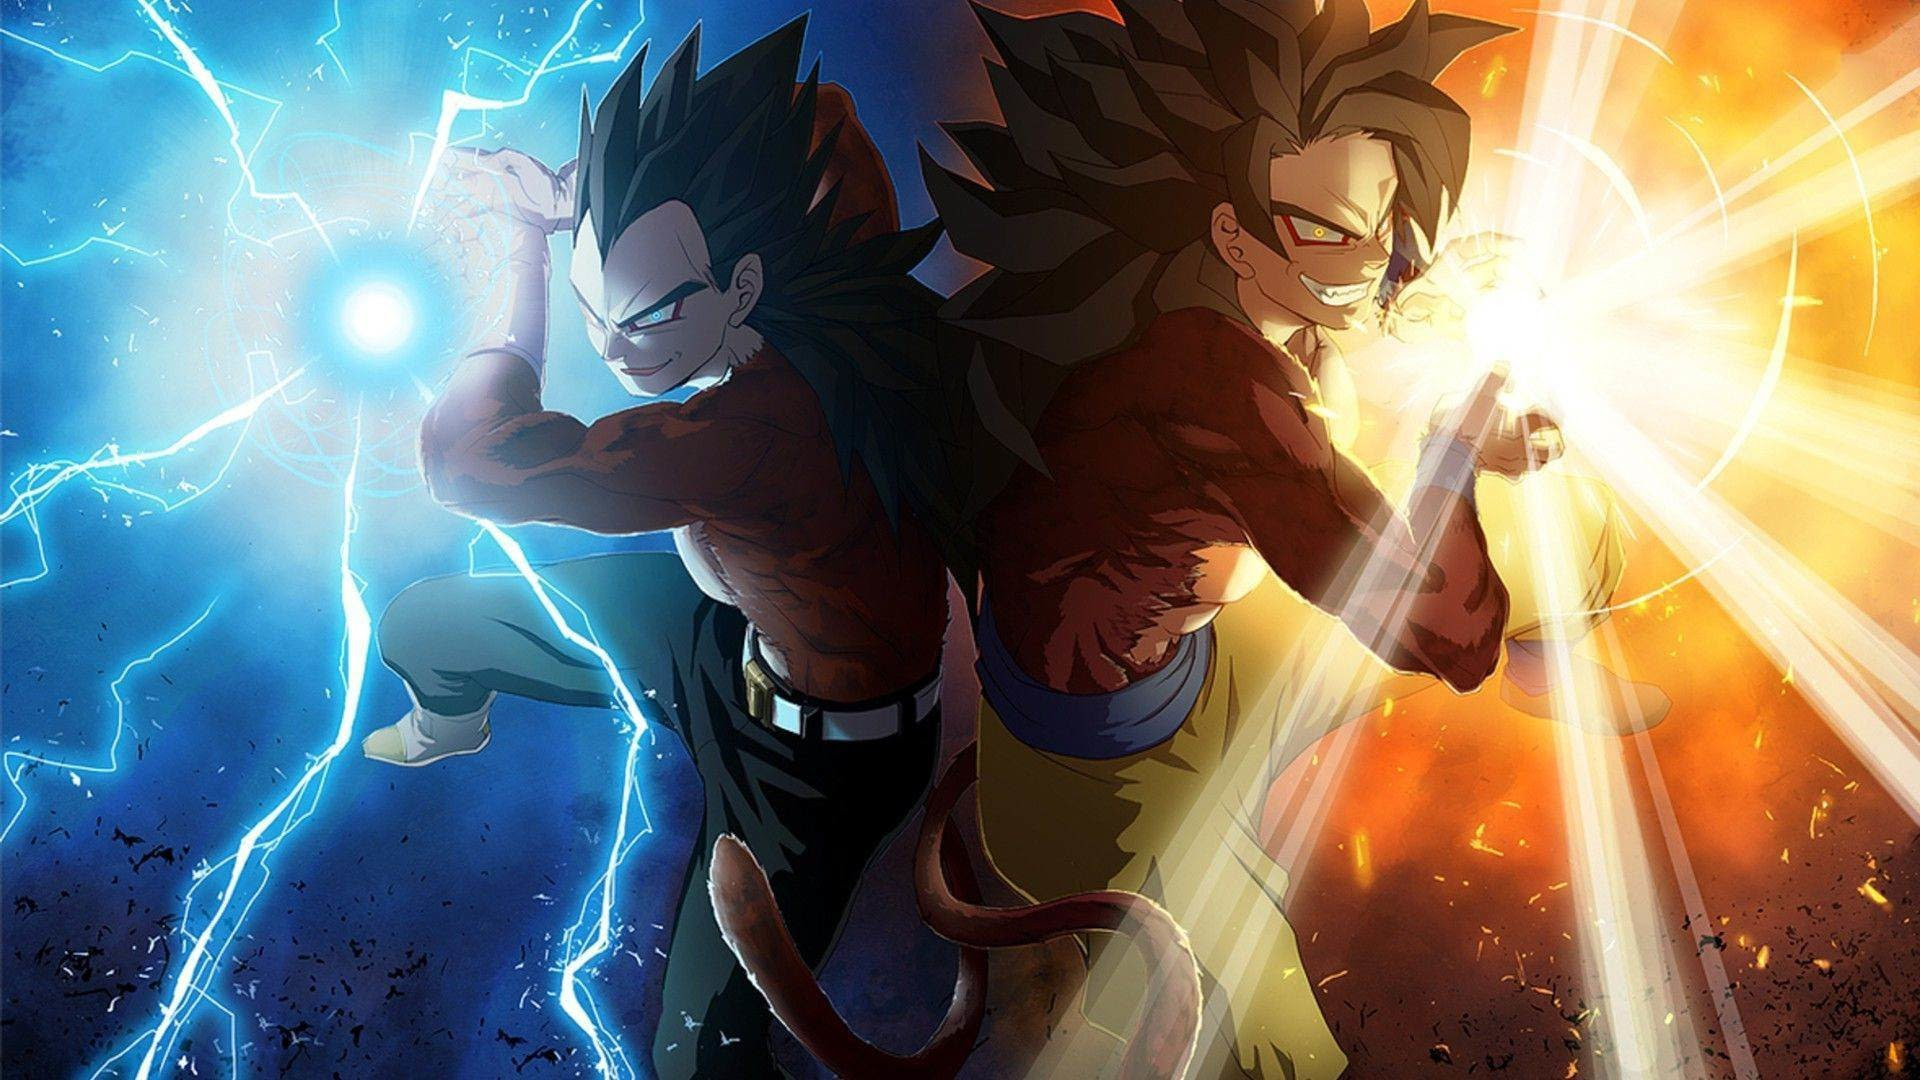 Dragon Ball Z Goku Hd Wallpapers 1080p